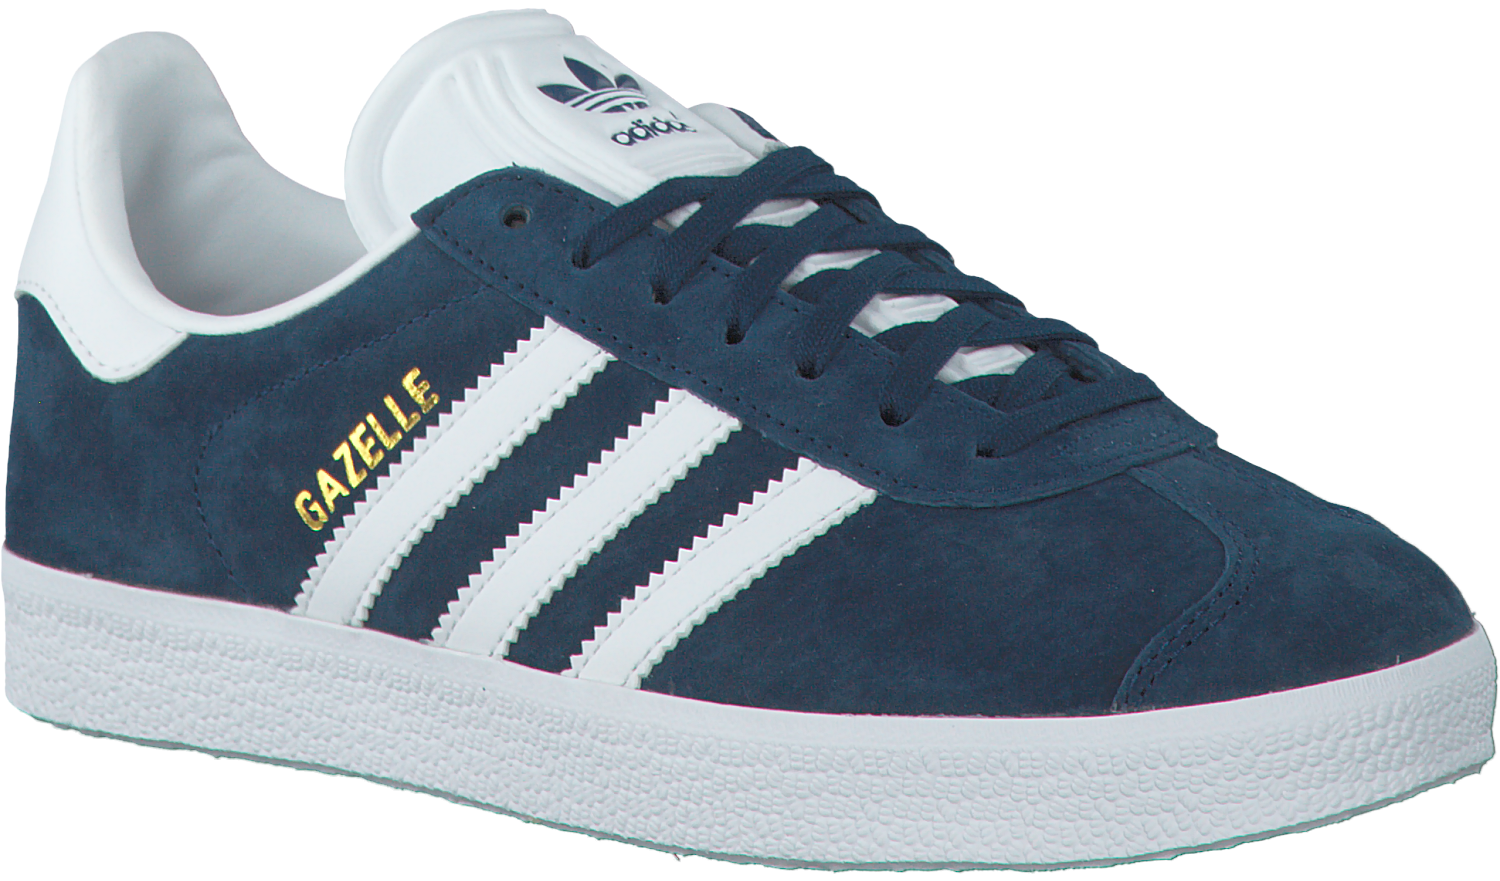 f7e9f964776 Blauwe ADIDAS Sneakers GAZELLE DAMES - large. Next